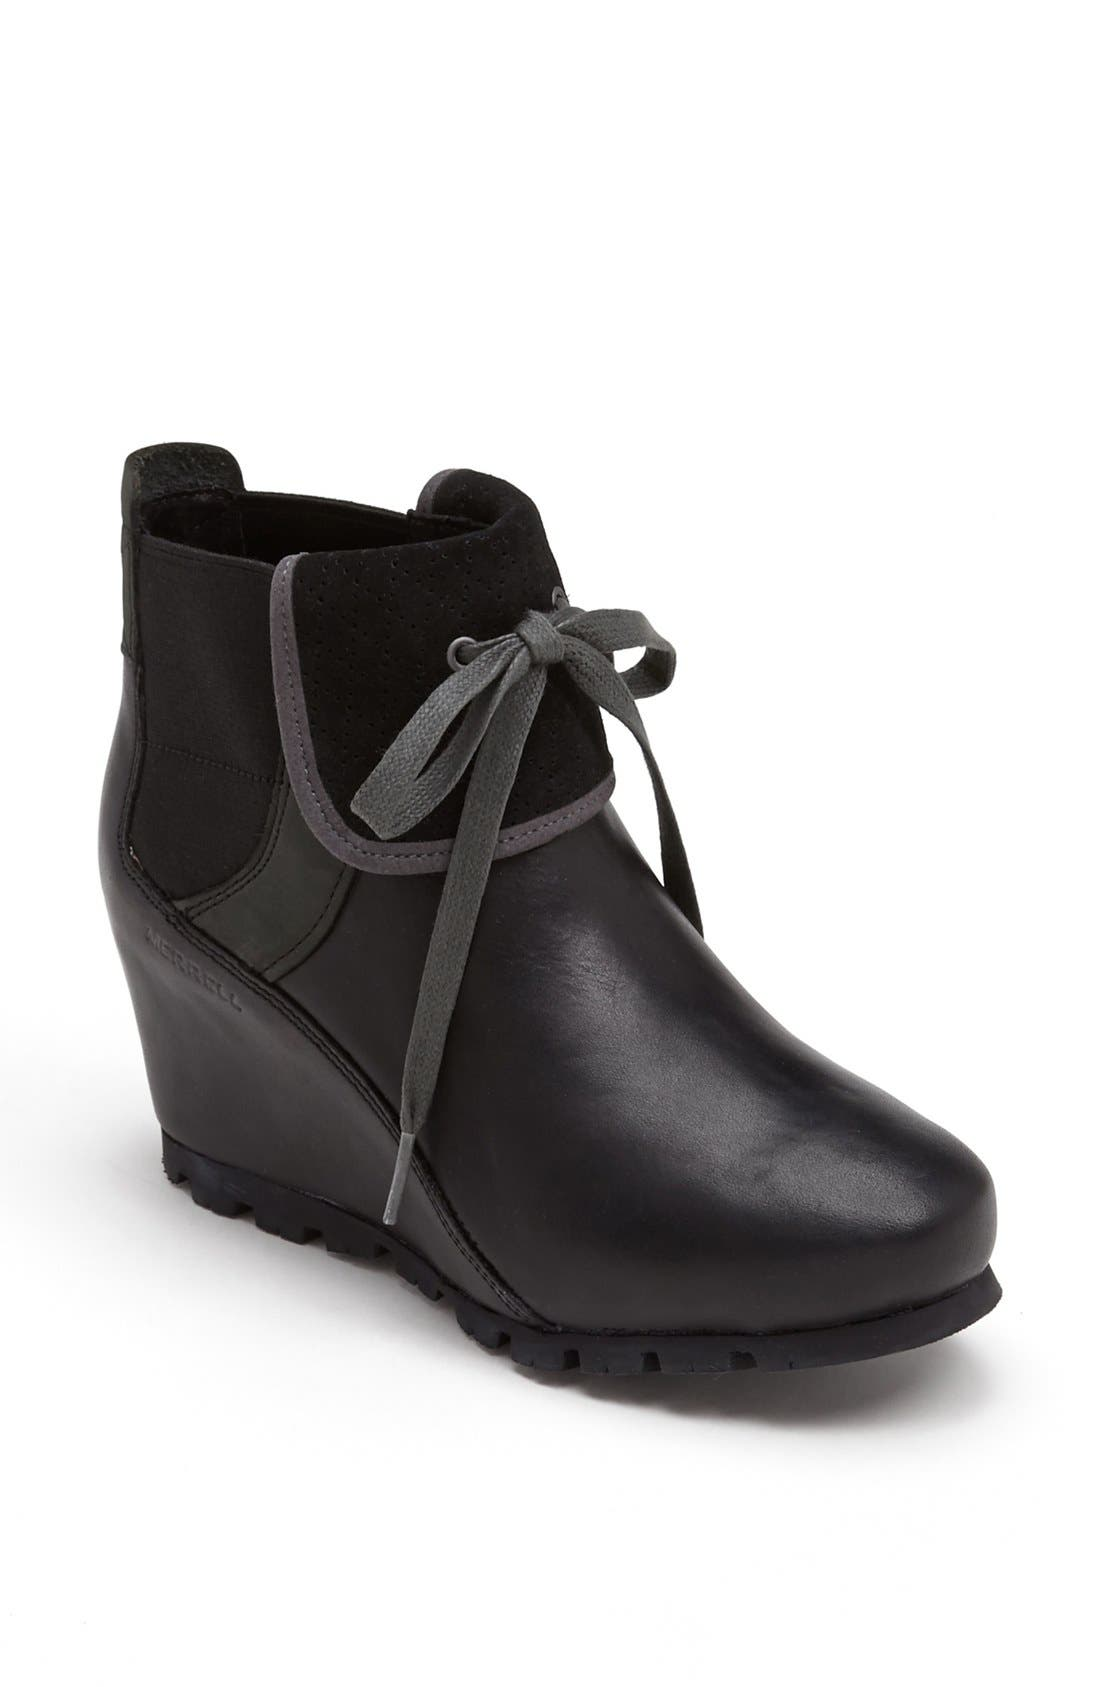 Alternate Image 1 Selected - Merrell 'Eve' Wedge Bootie